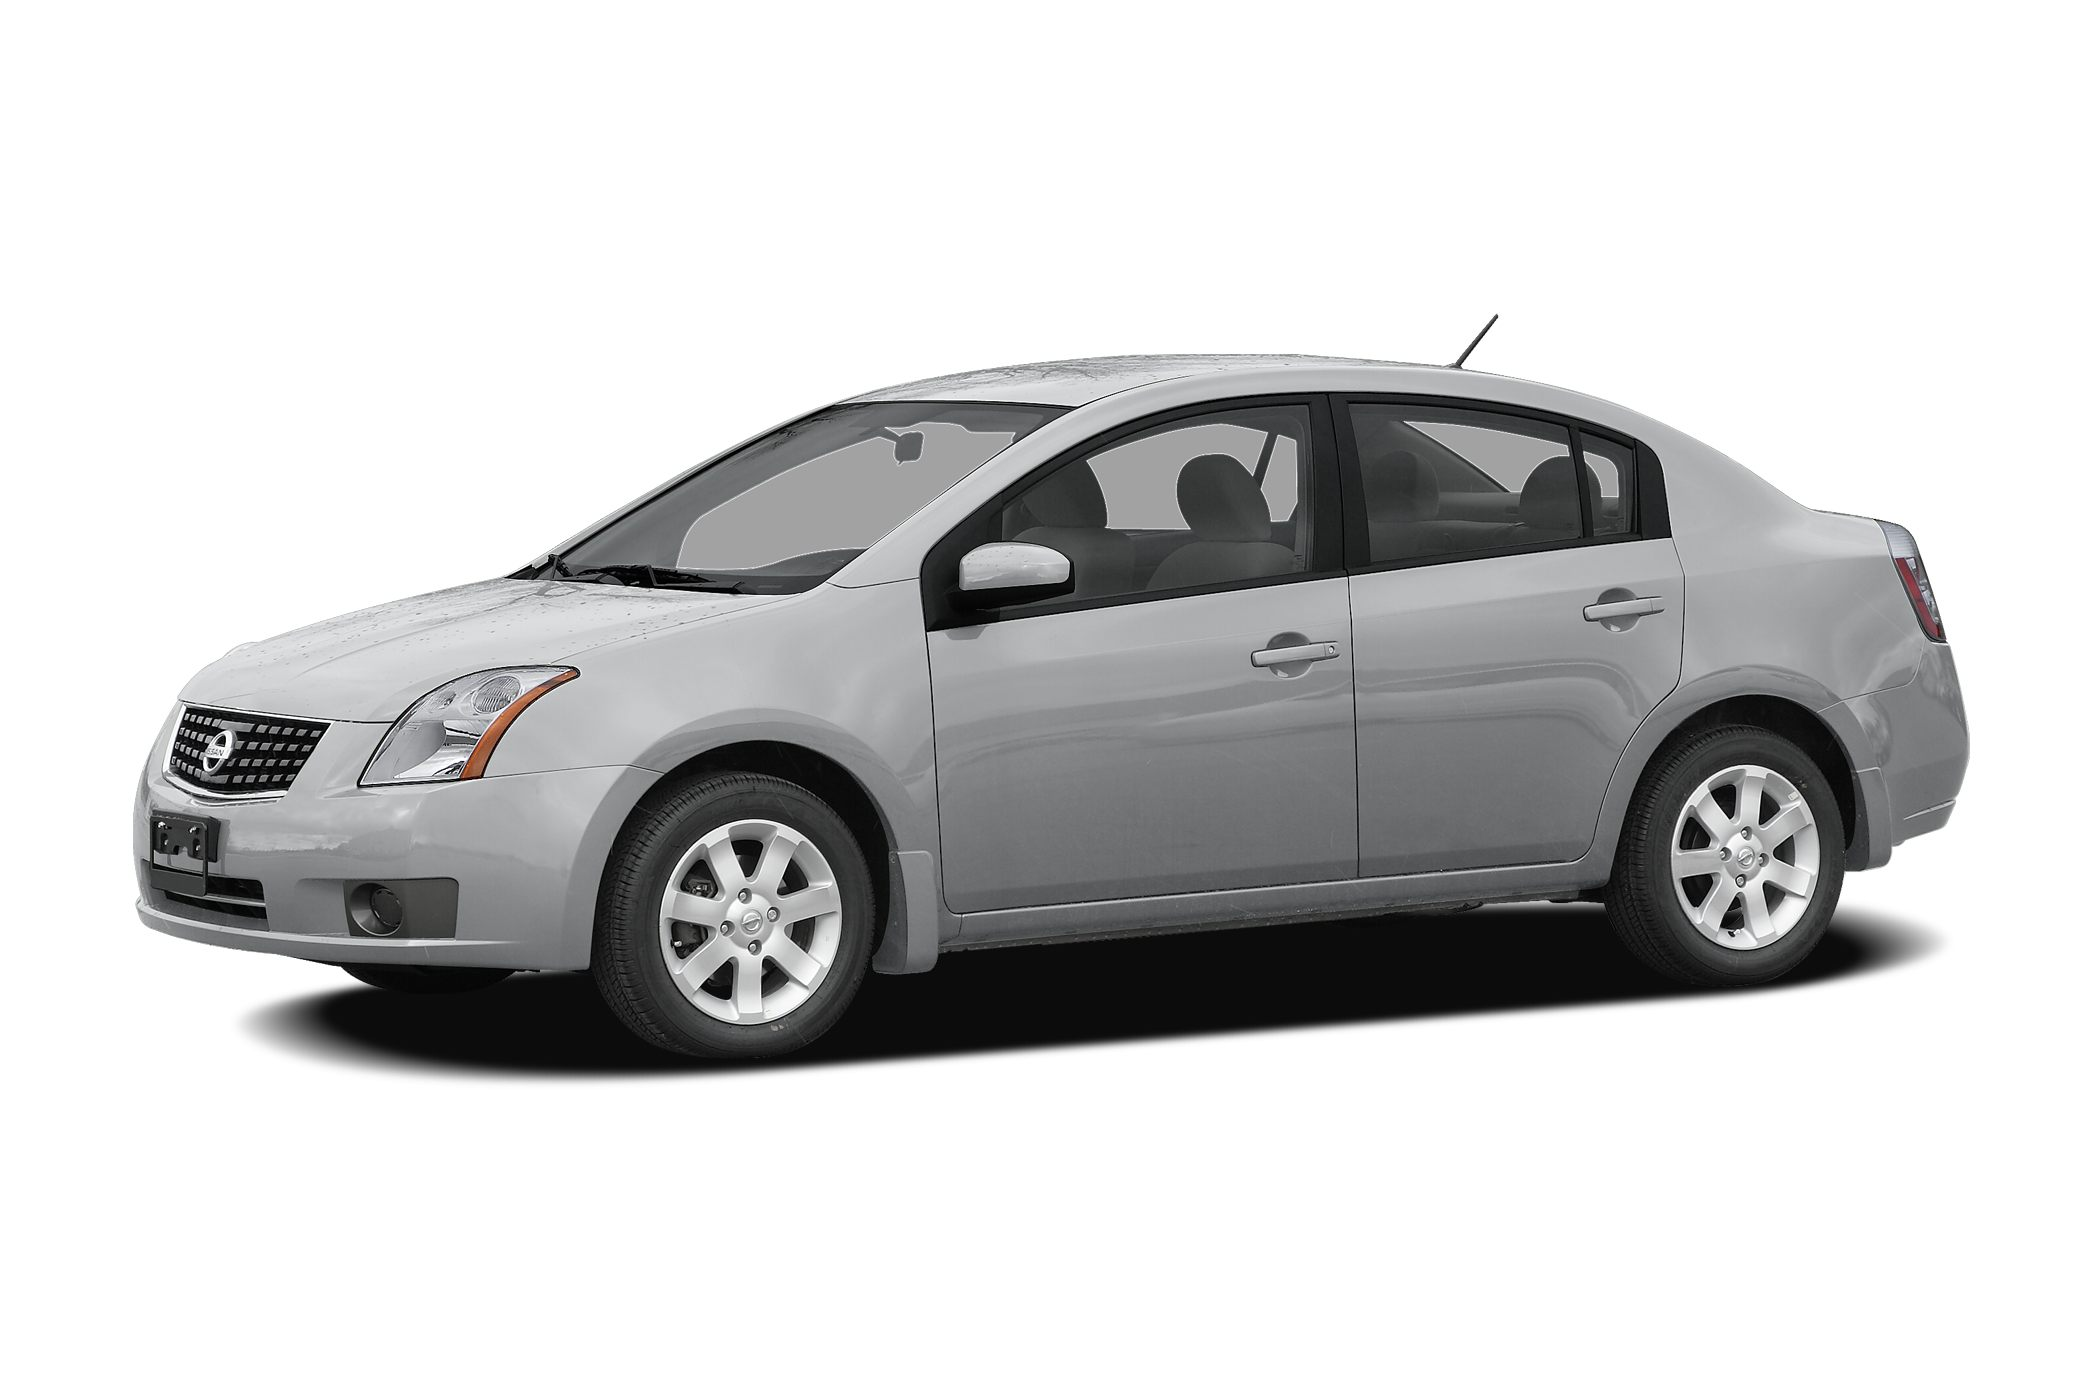 2007 Nissan Sentra 2.0 Sedan for sale in Machesney Park for $5,950 with 123,596 miles.